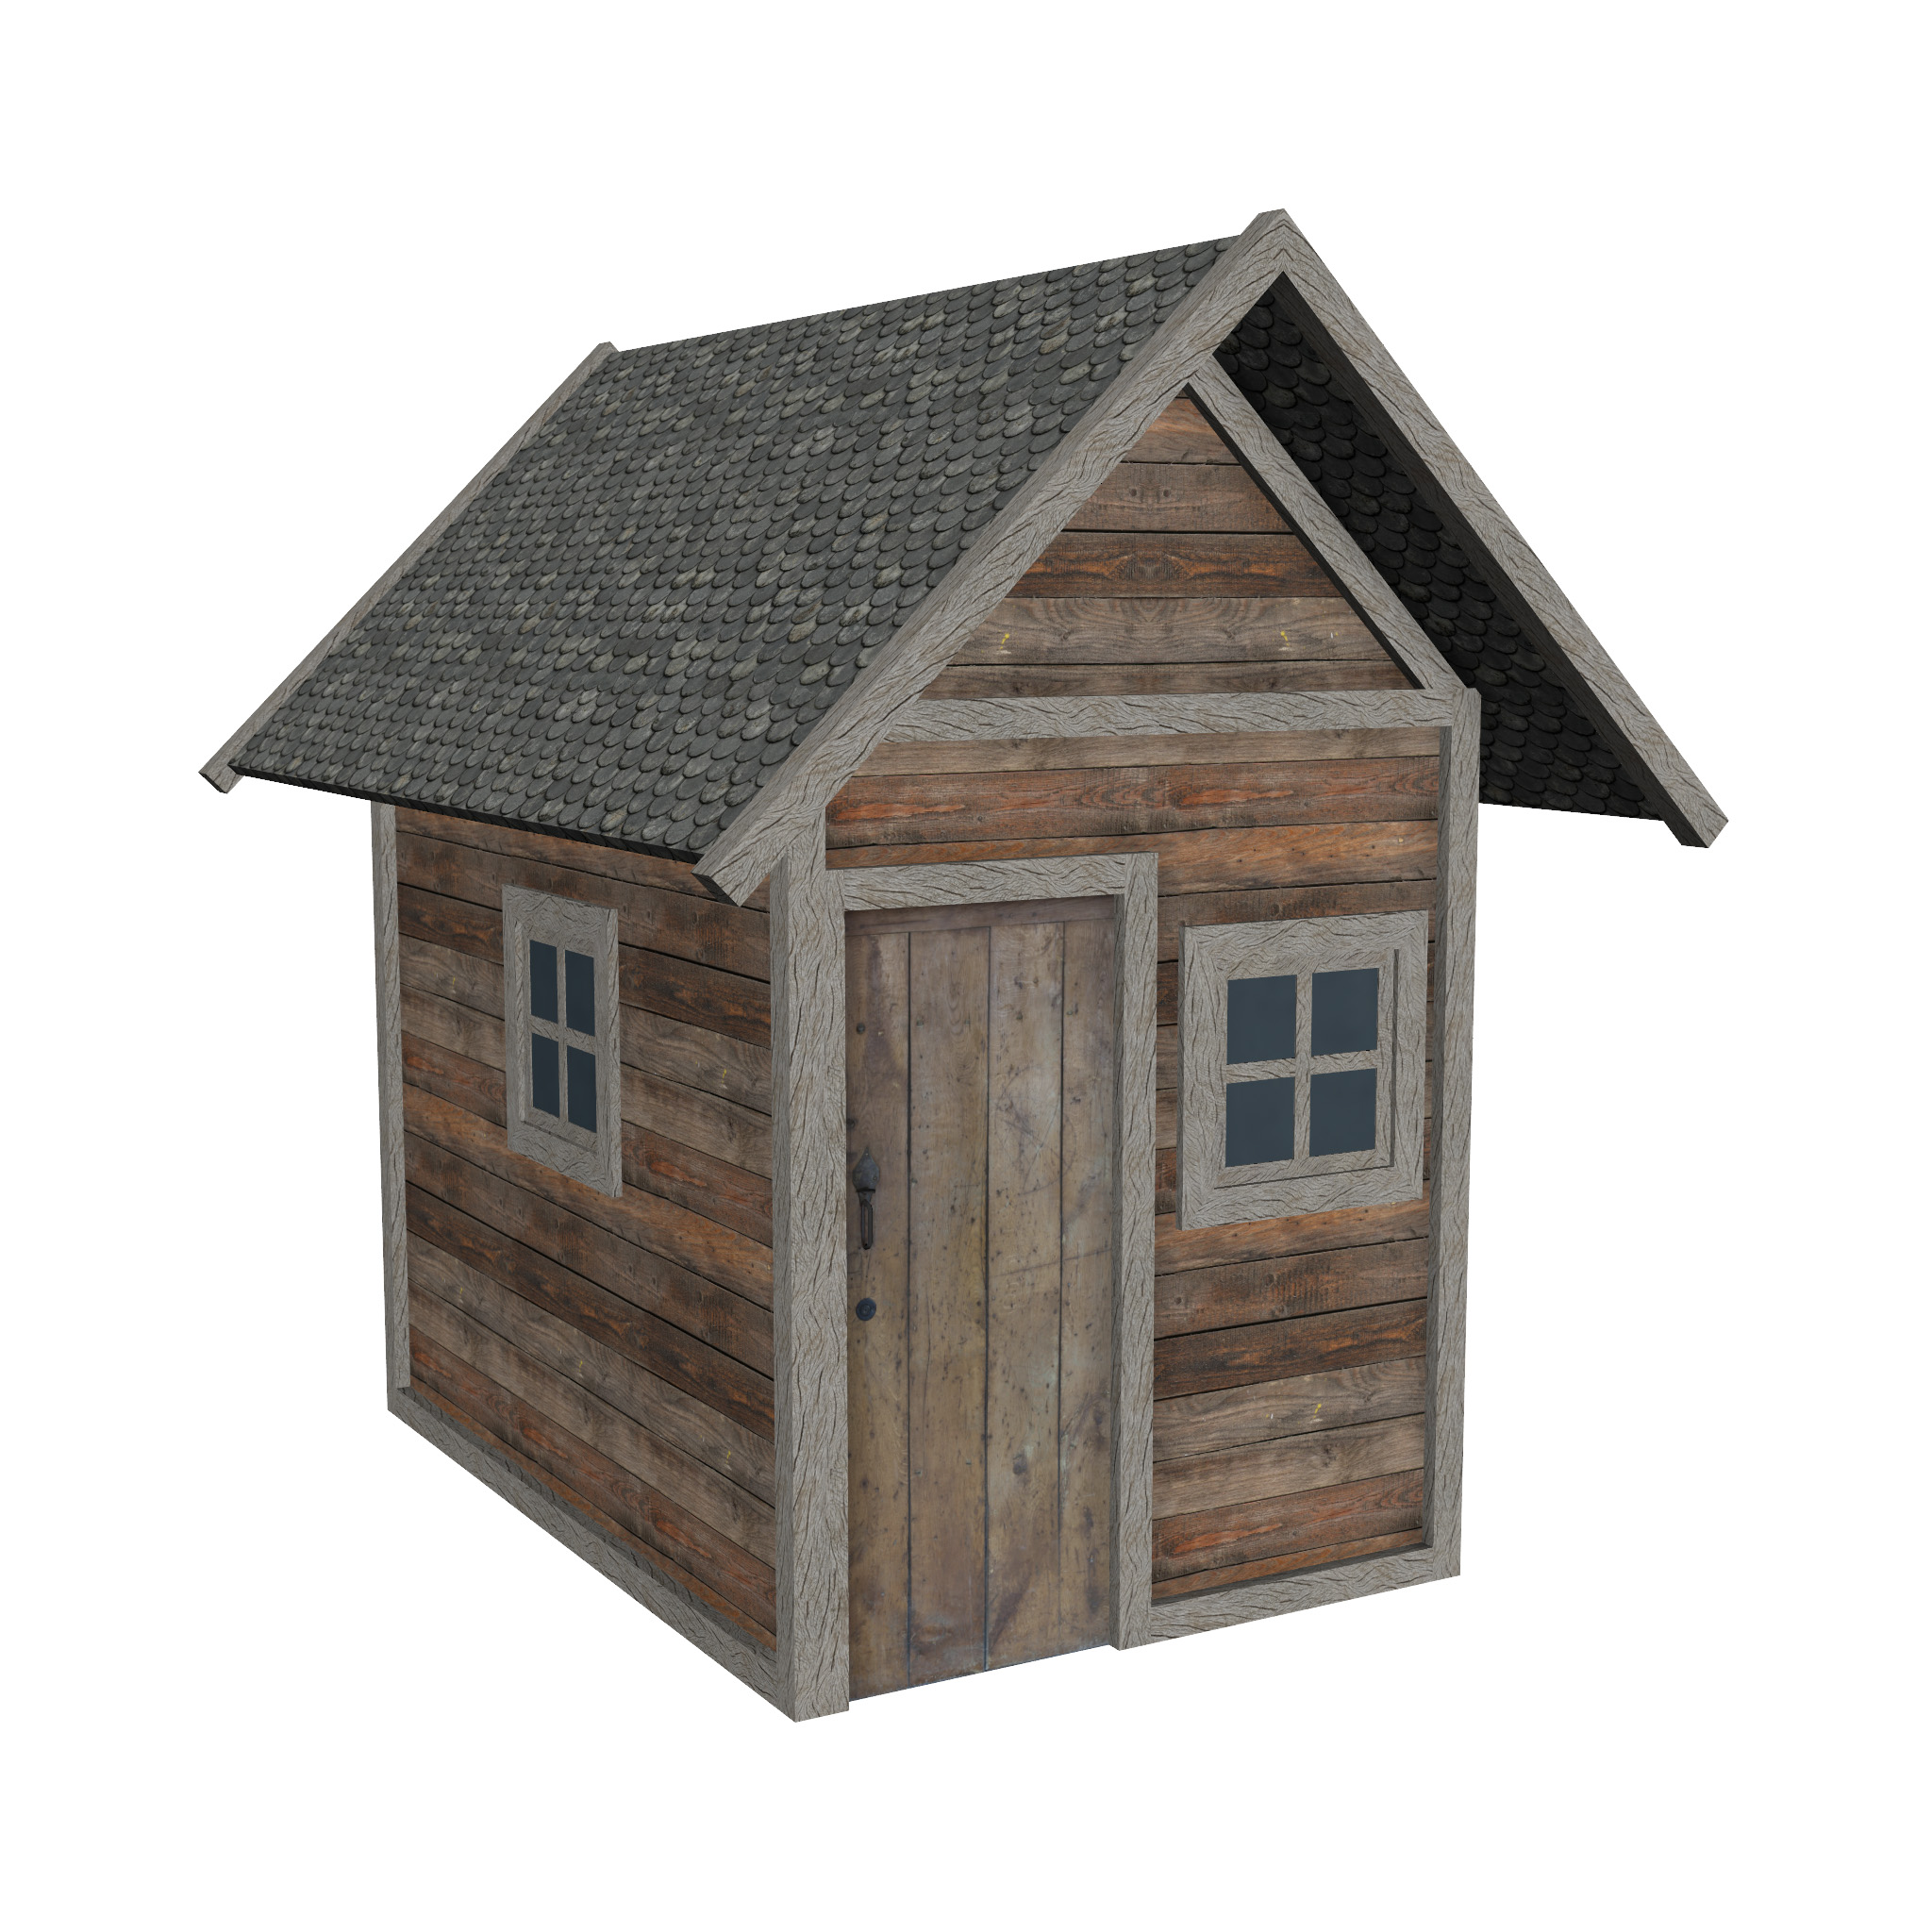 modular wood house set 3d model fbx ma mb 271455